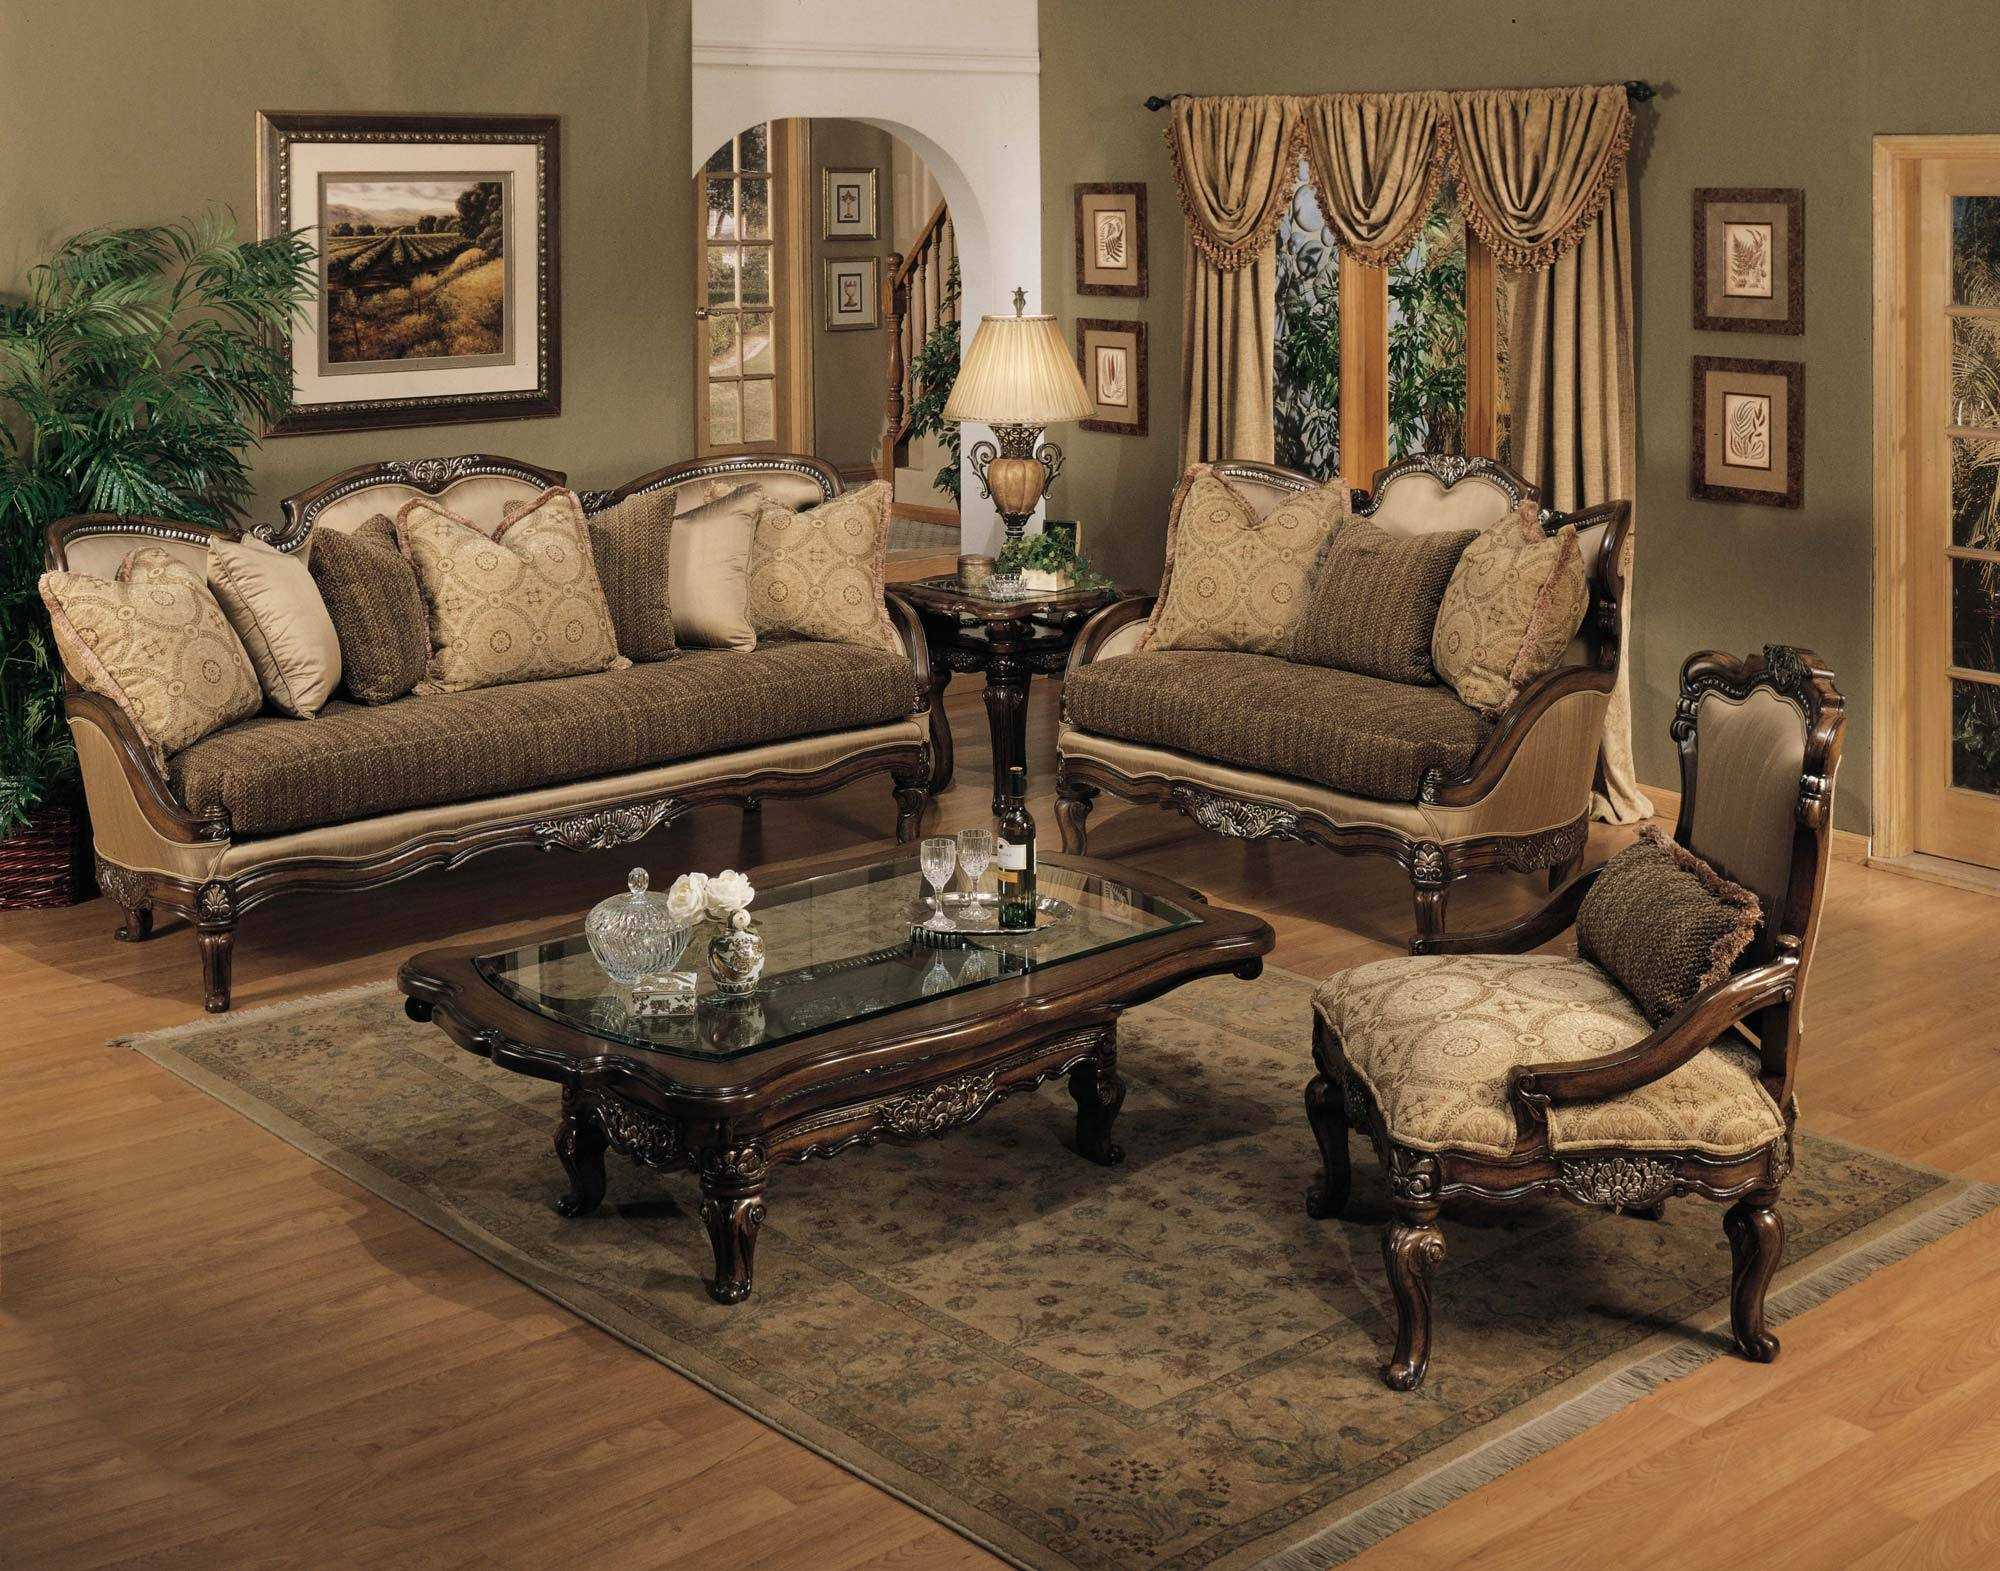 Elegant Living Room Ideas Fotolipcom Rich Image And